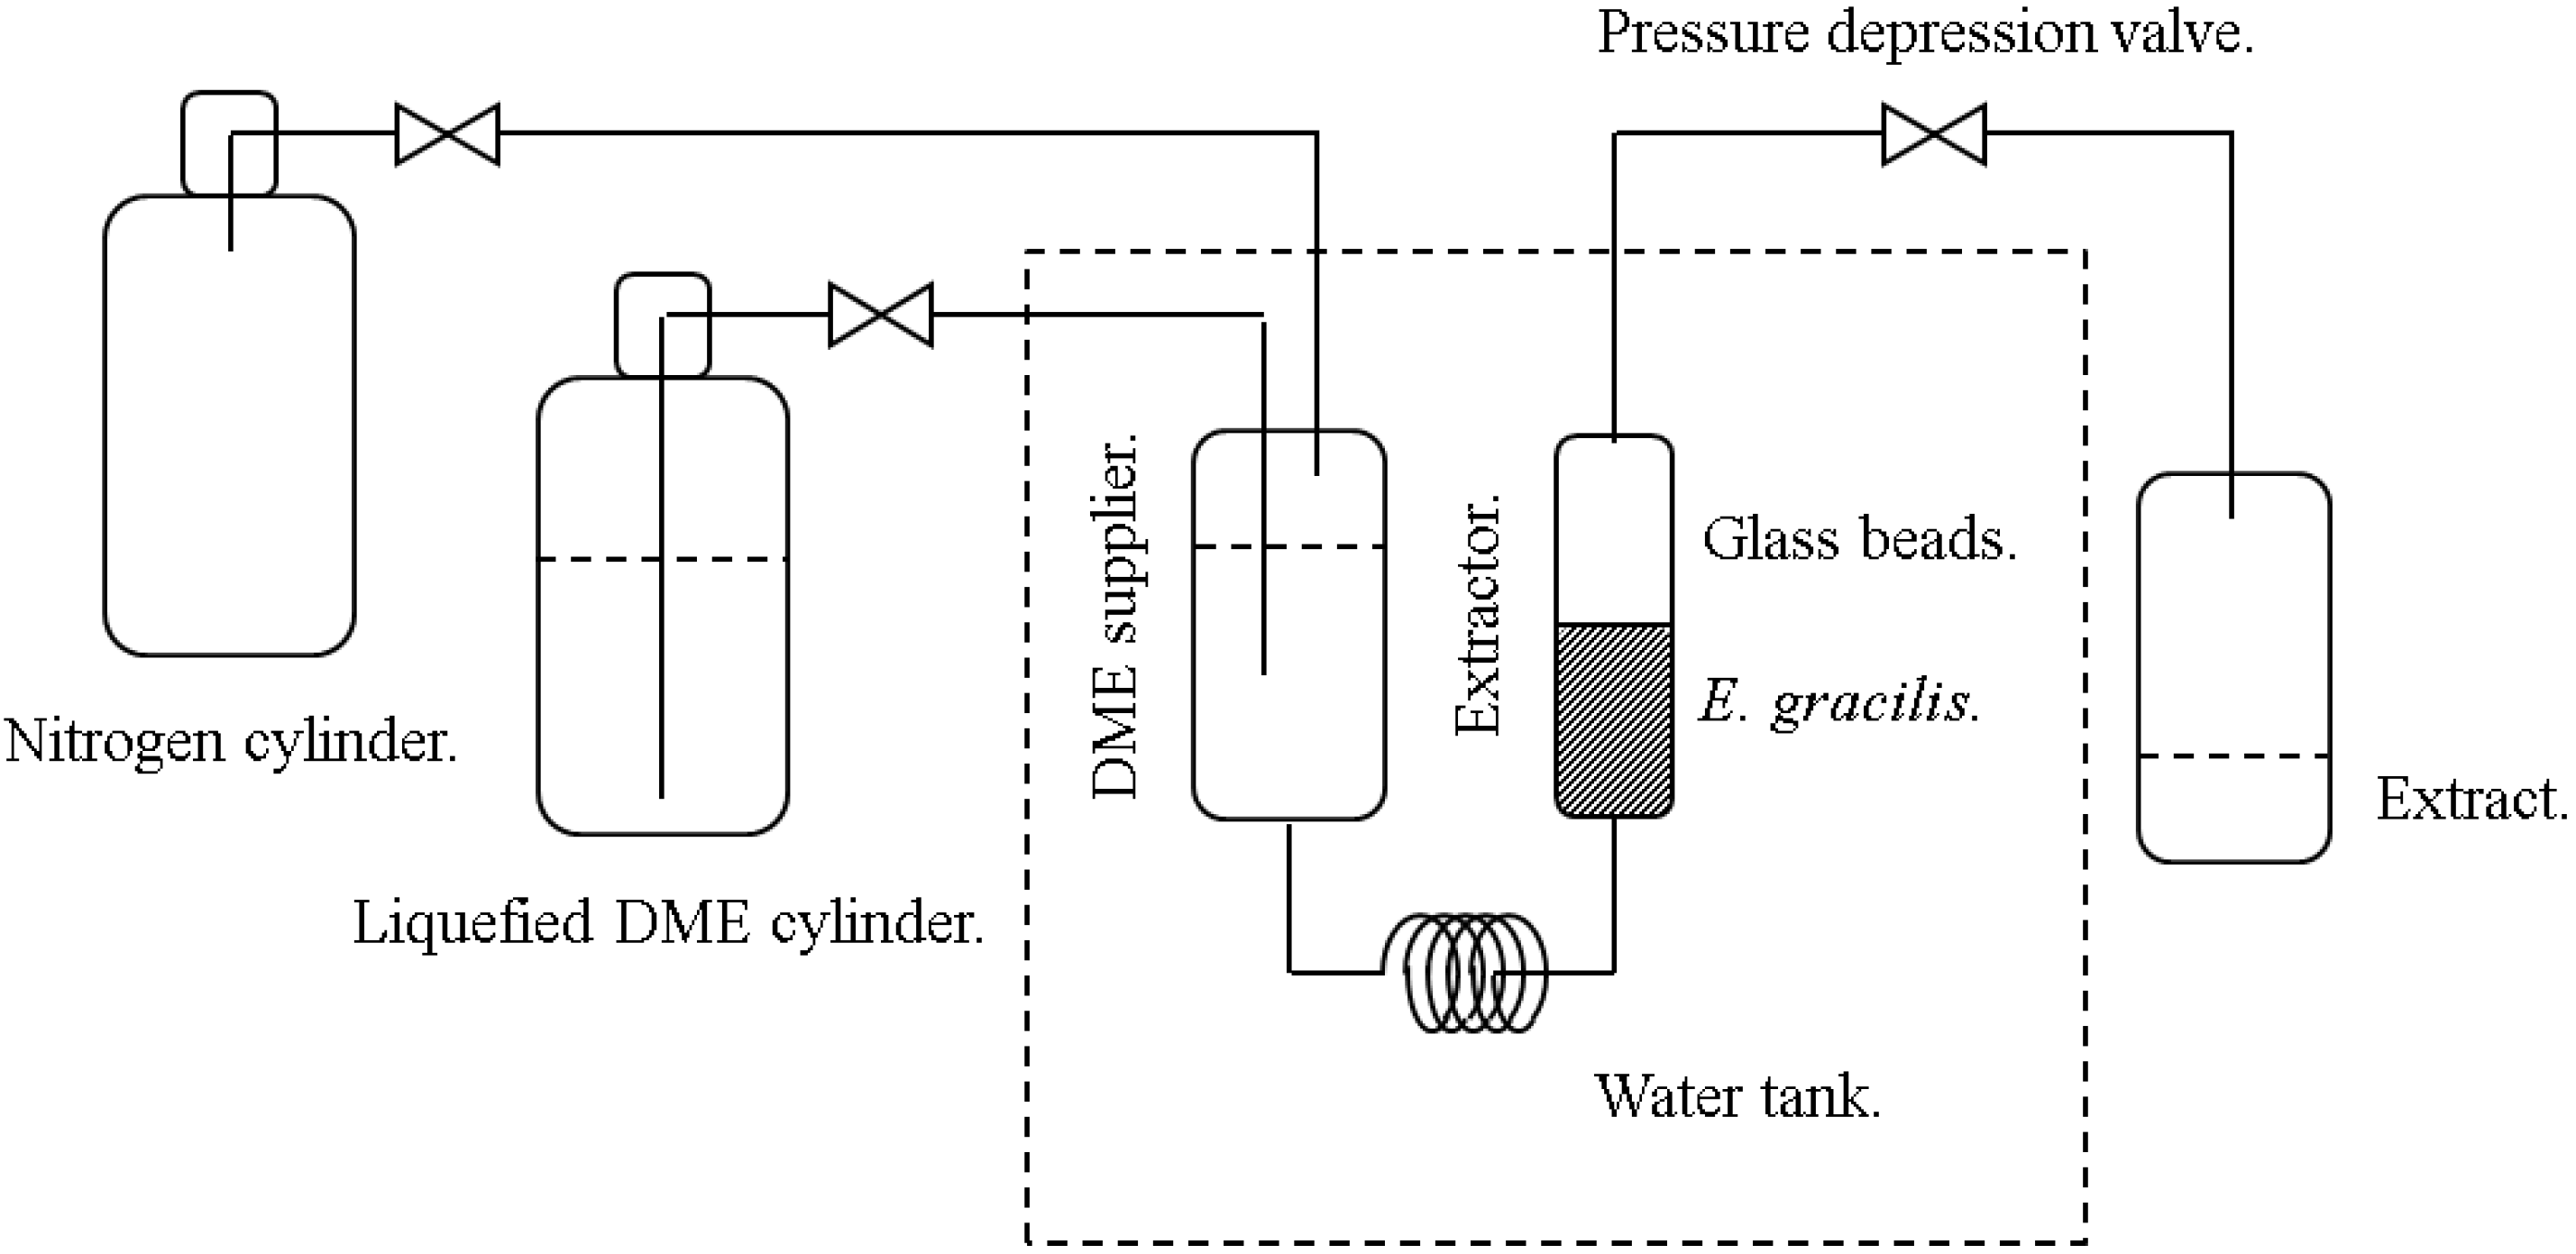 Energies Free Full Text Energy Saving Lipid Extraction From Wet Euglena Gracilis By The Low Boiling Point Solvent Dimethyl Ether Html